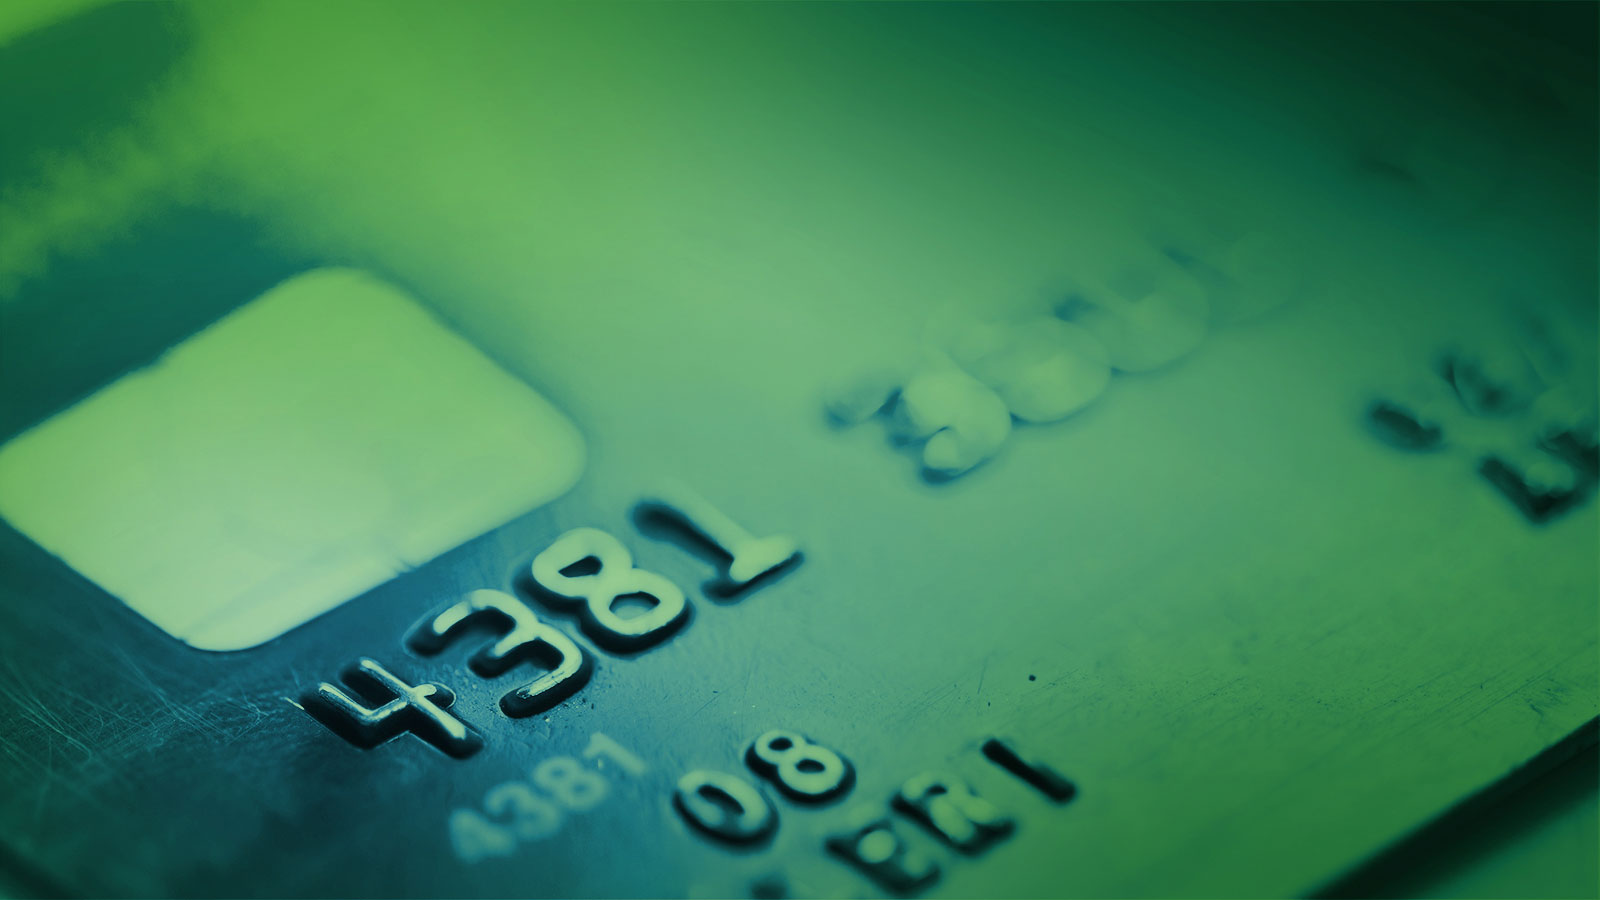 Credit card shown with PAN and other PCI